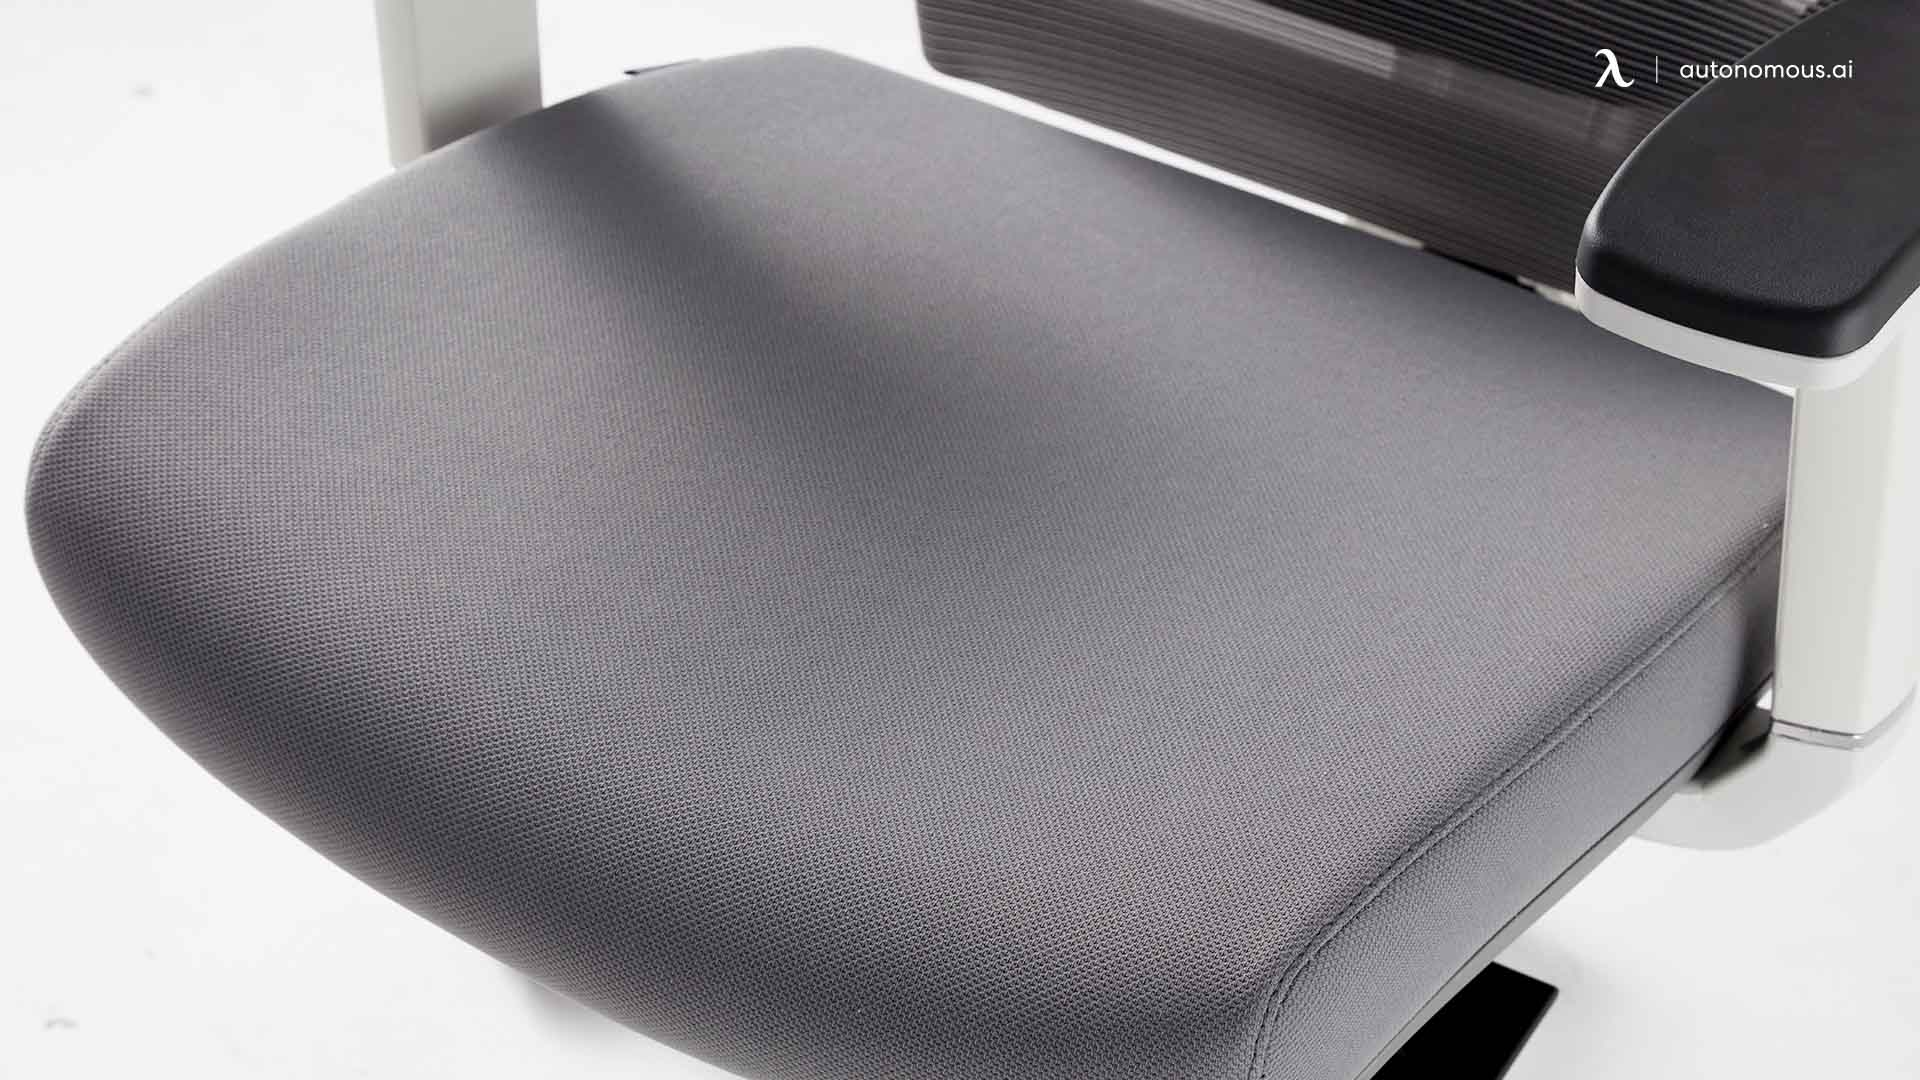 Reasons for buying the best seat cushion for lower back pain